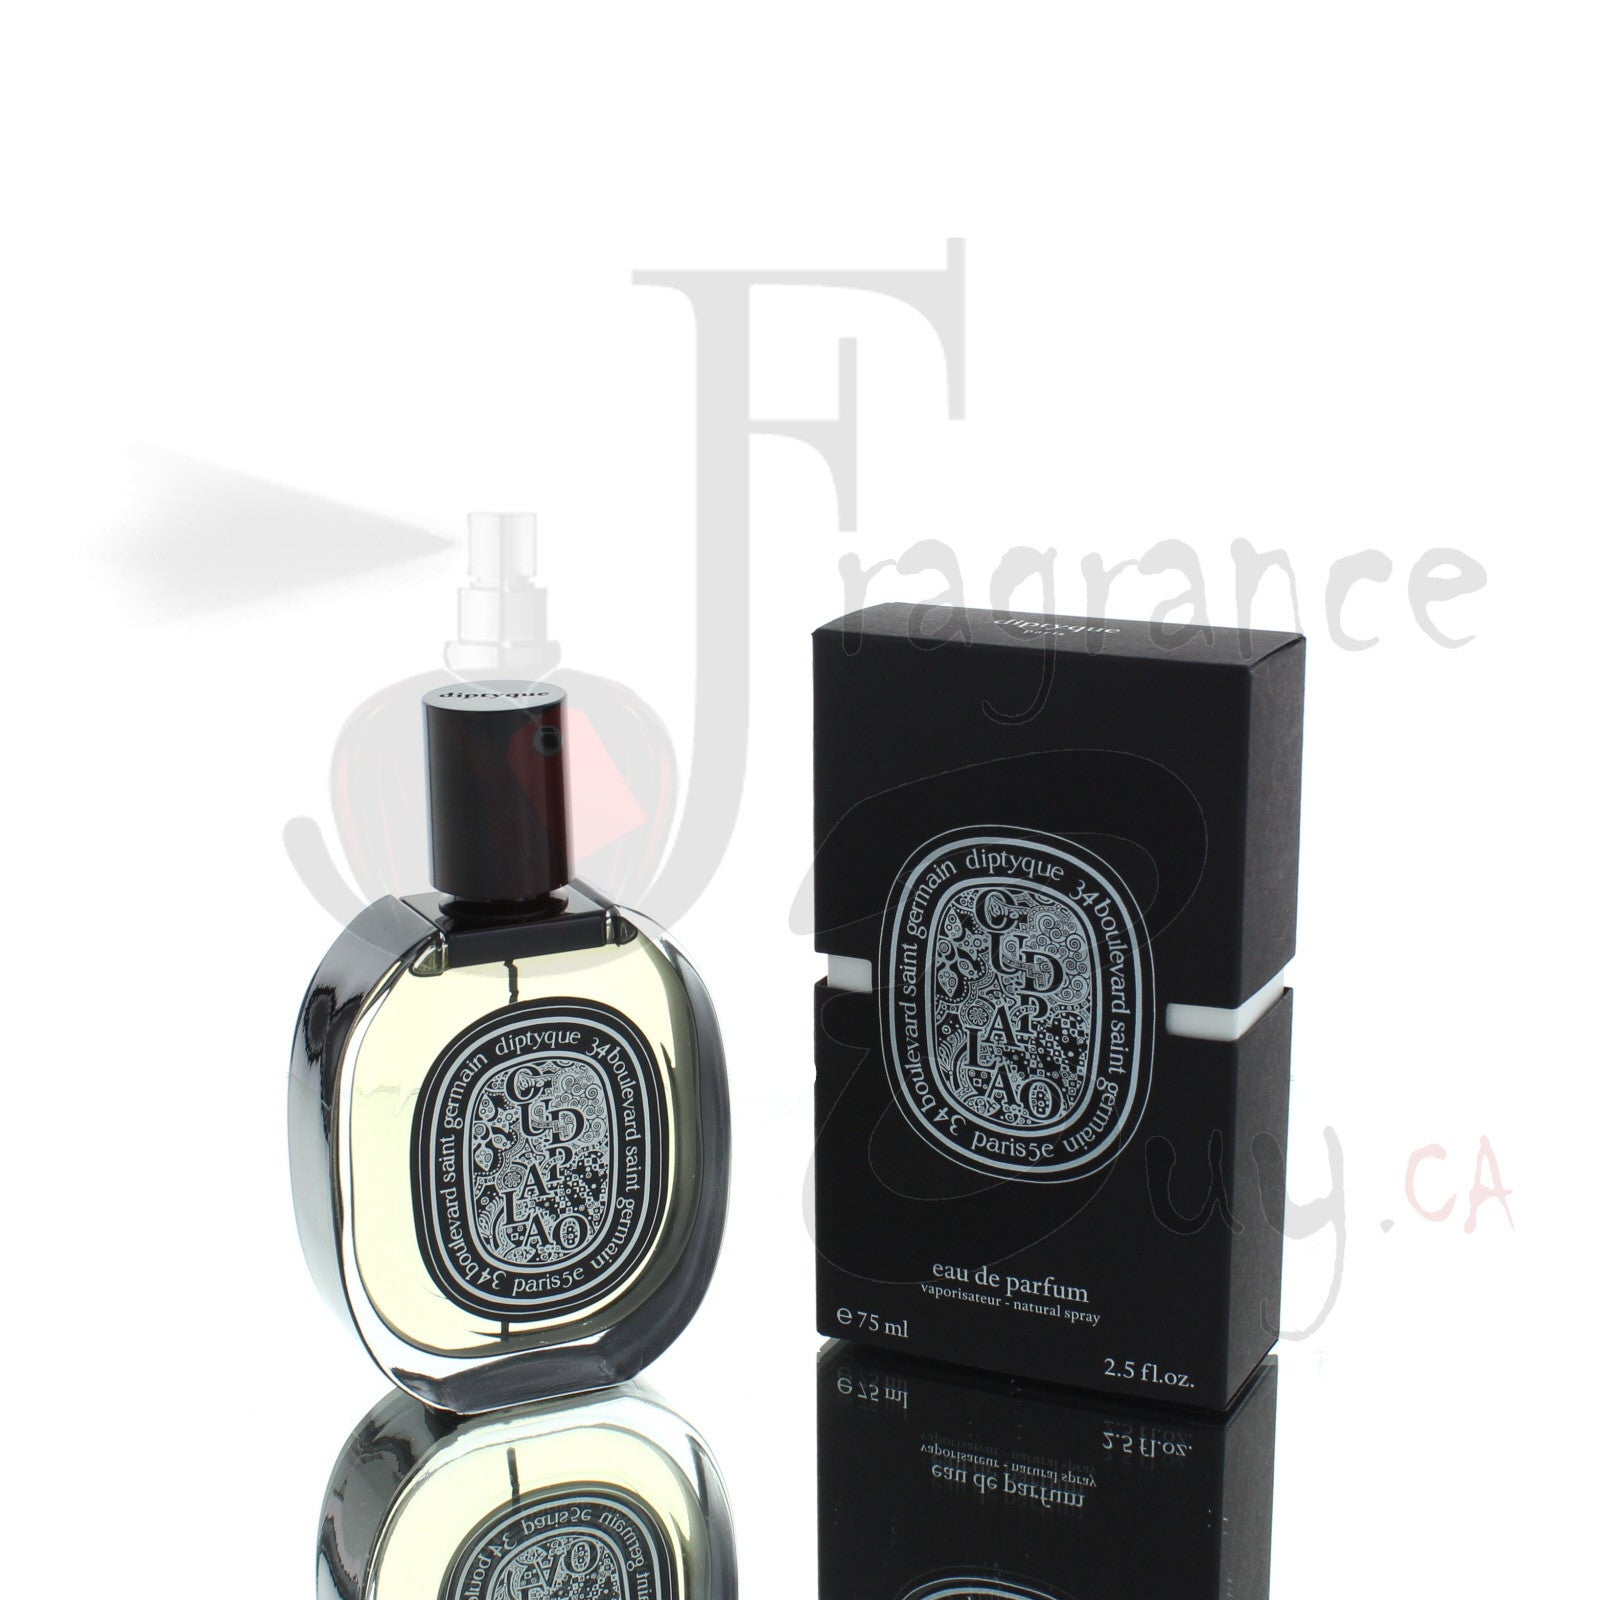 Diptyque Oud Palao For Man